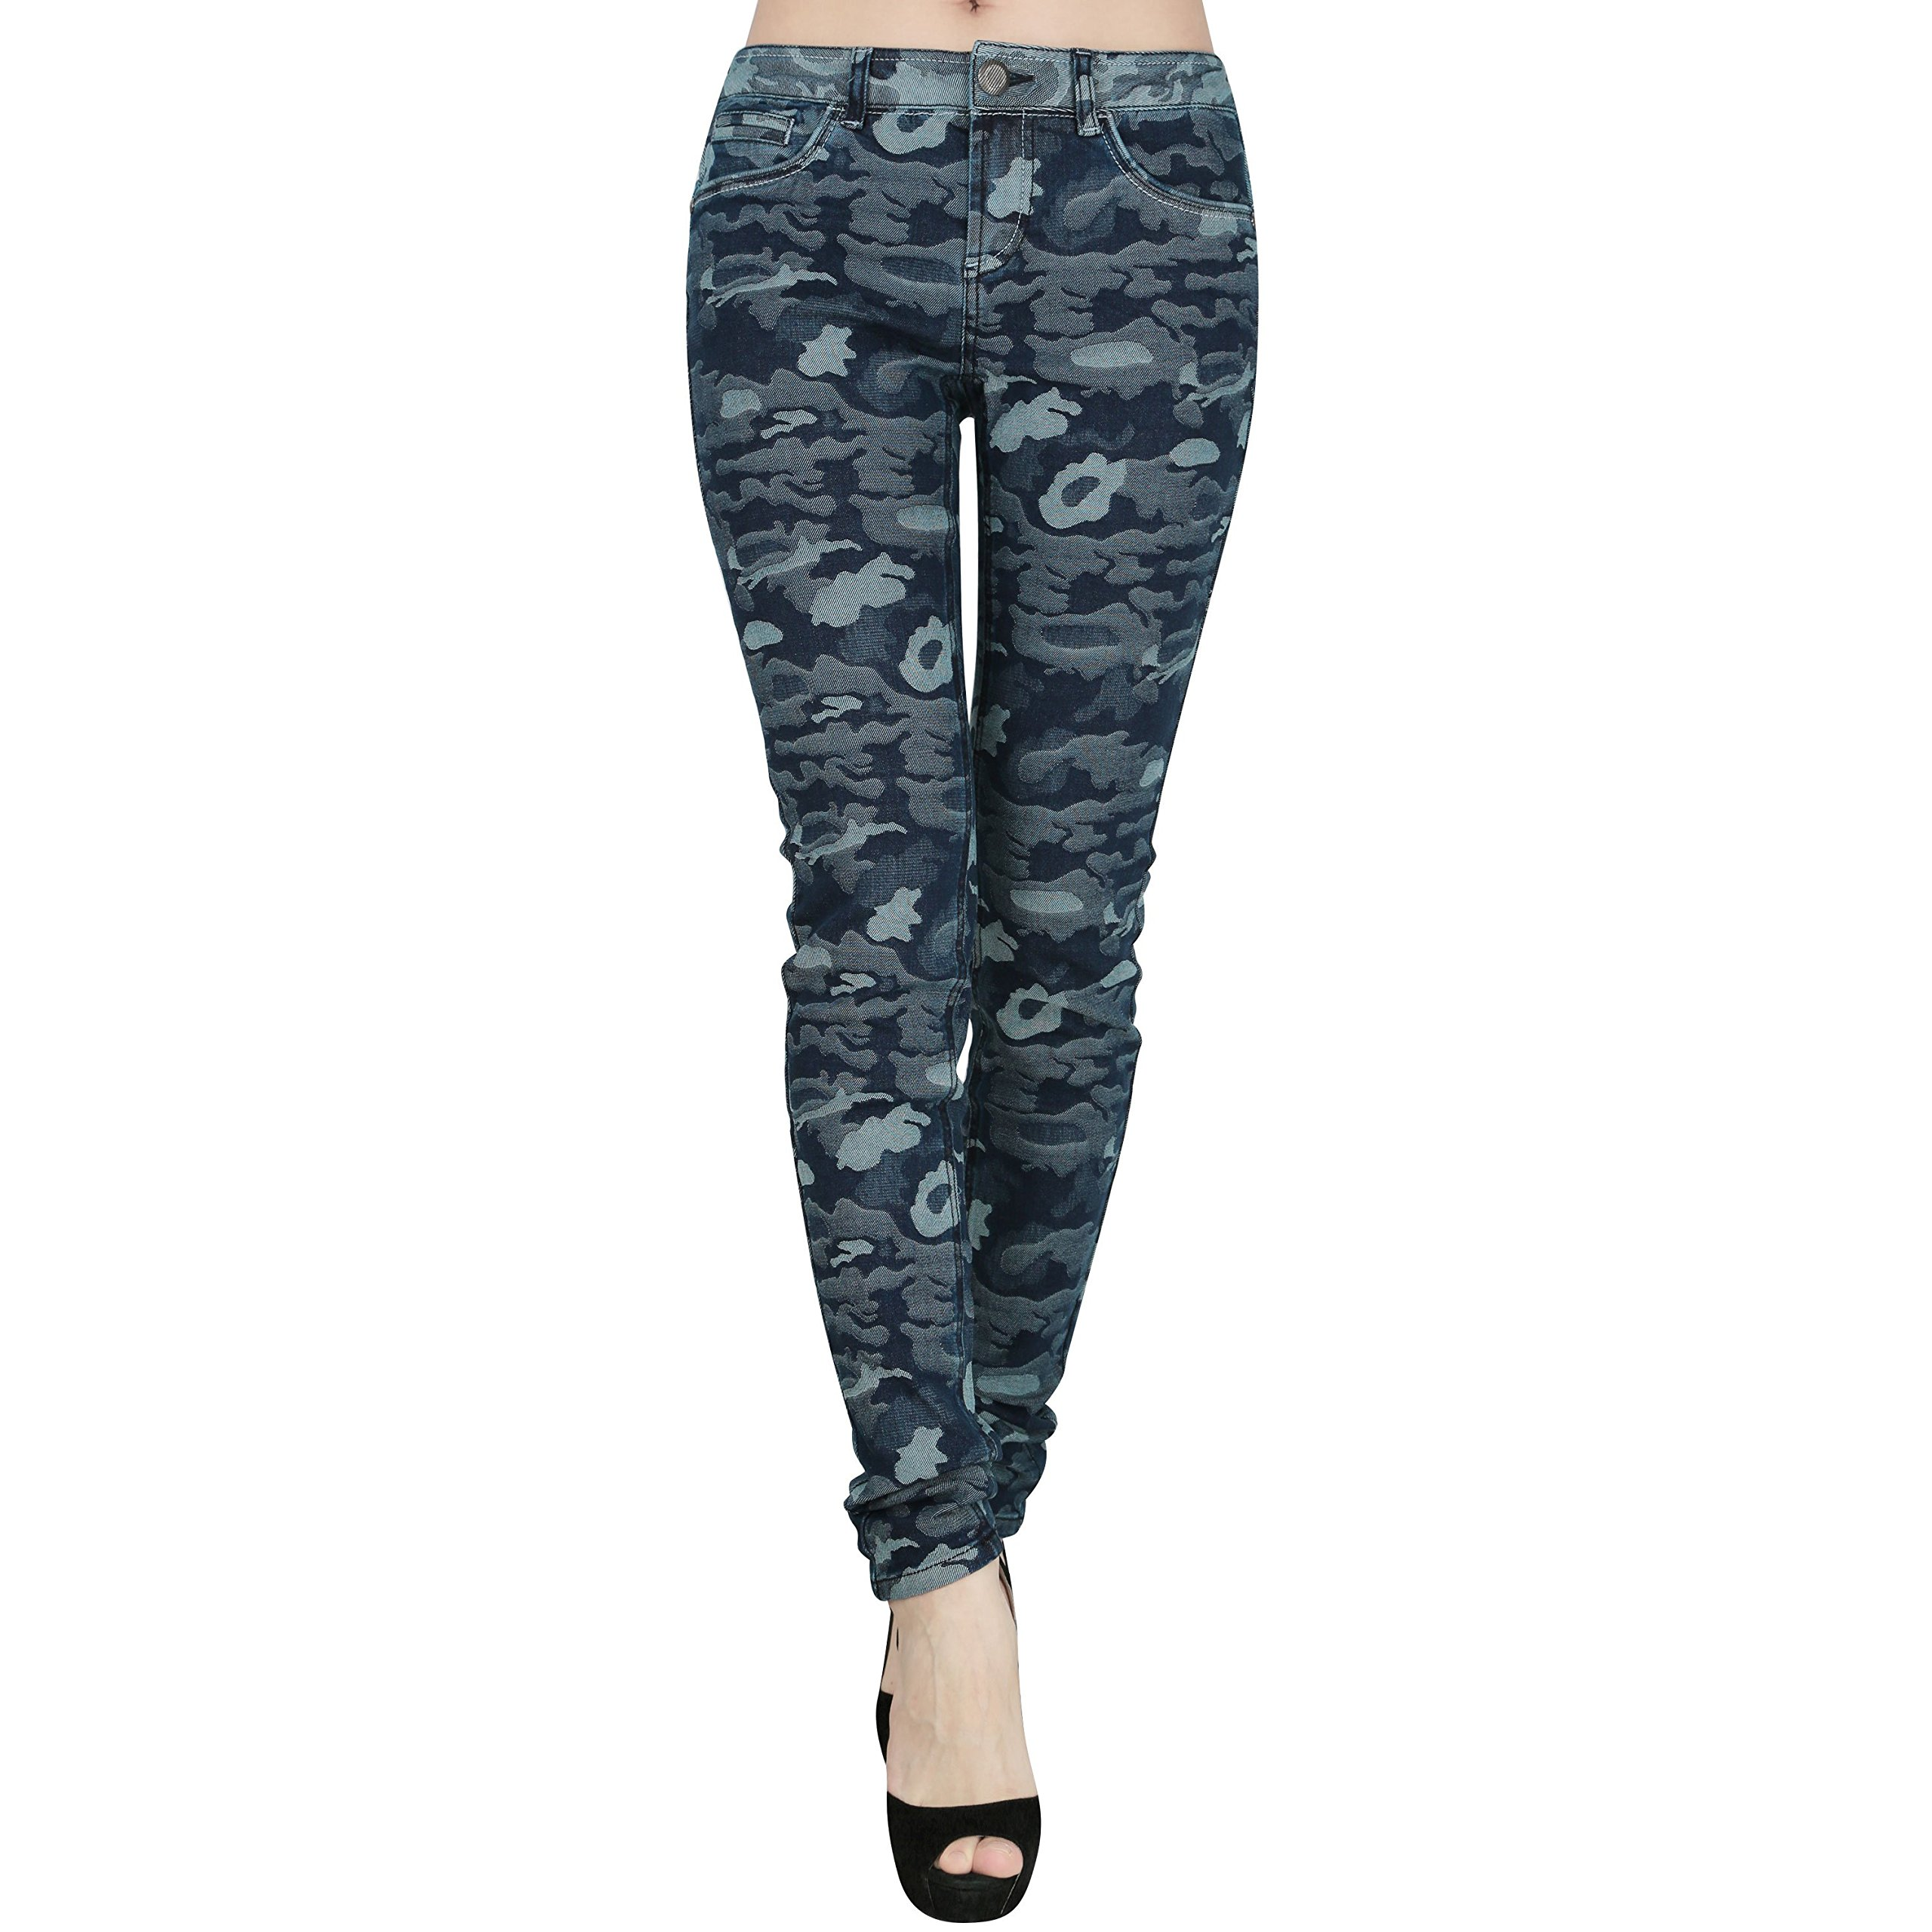 jntworld Ladies Jeans Slim Skinny Supersoft Navy Camouflage Womens Jeans, Navy Blue, M